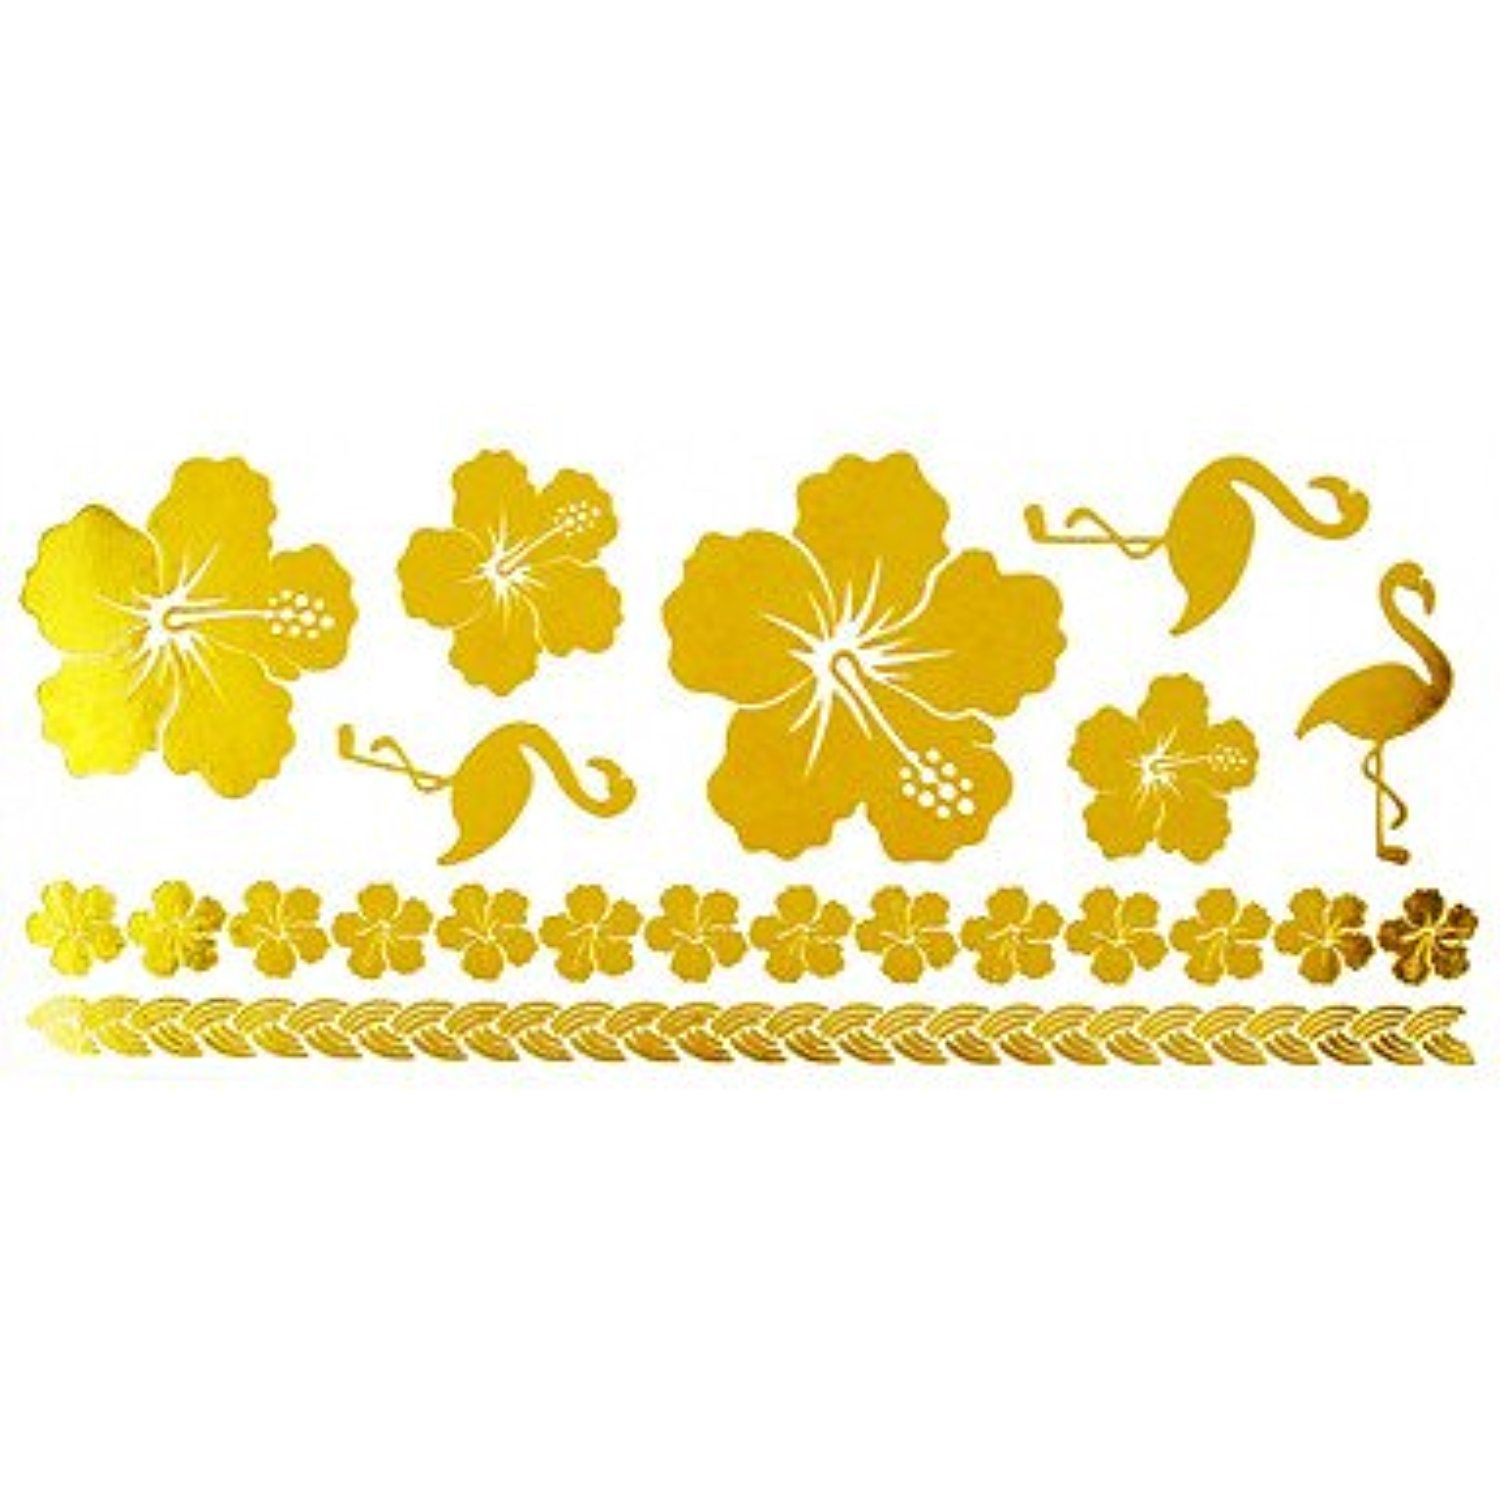 Pc gold long bracelet tattoo sticker xcm check out the image